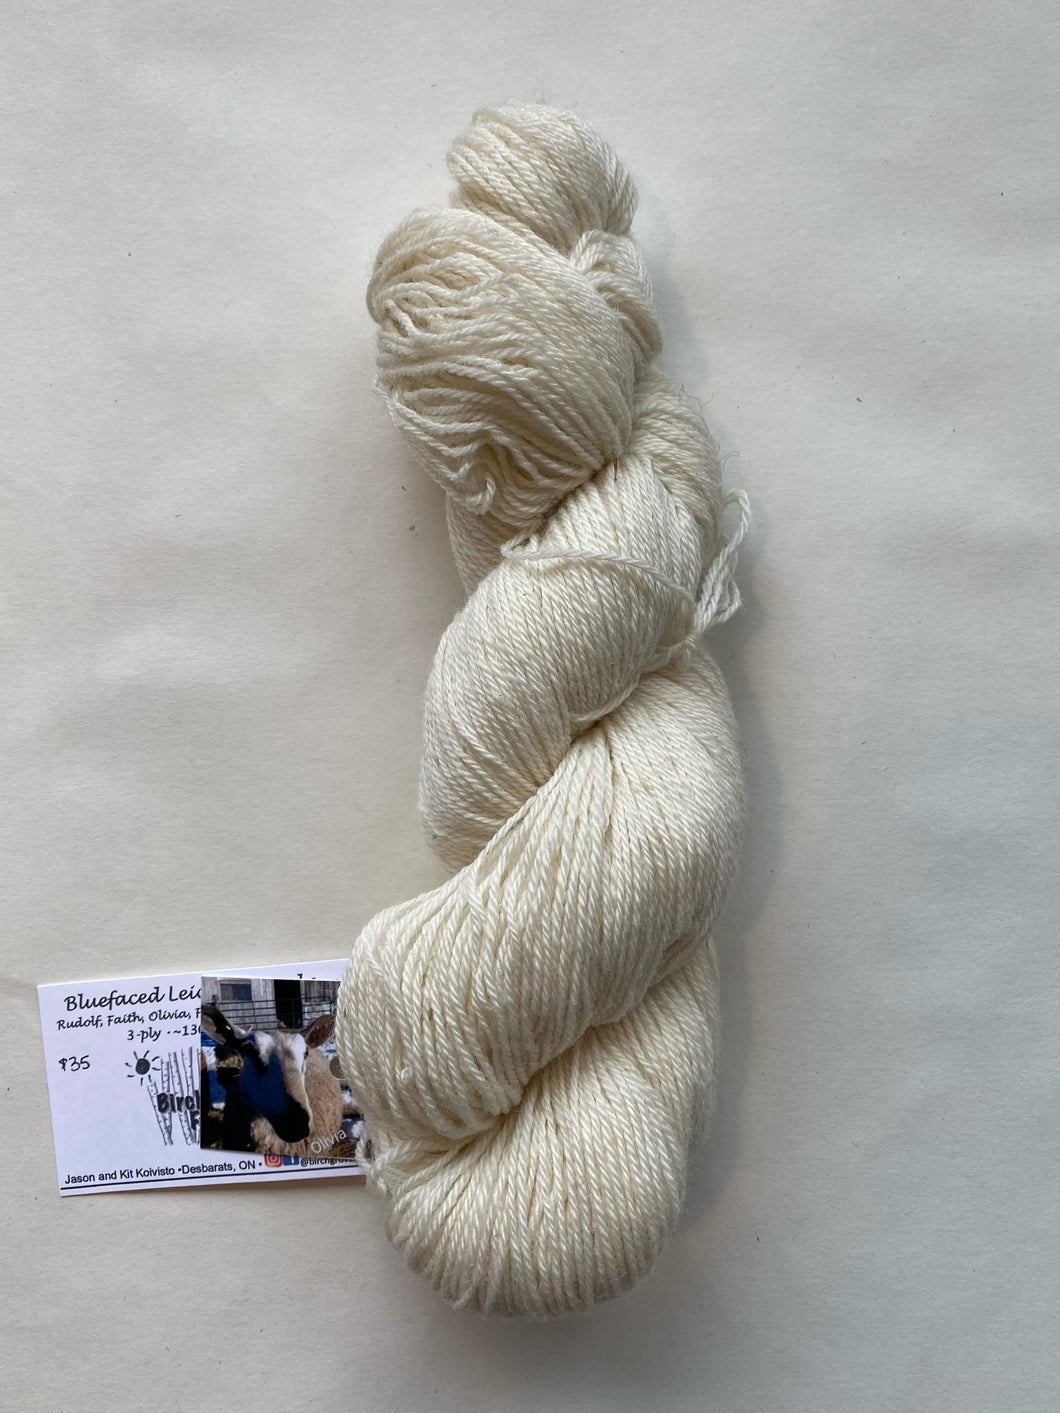 Bluefaced Leicester 3ply Yarn (white)